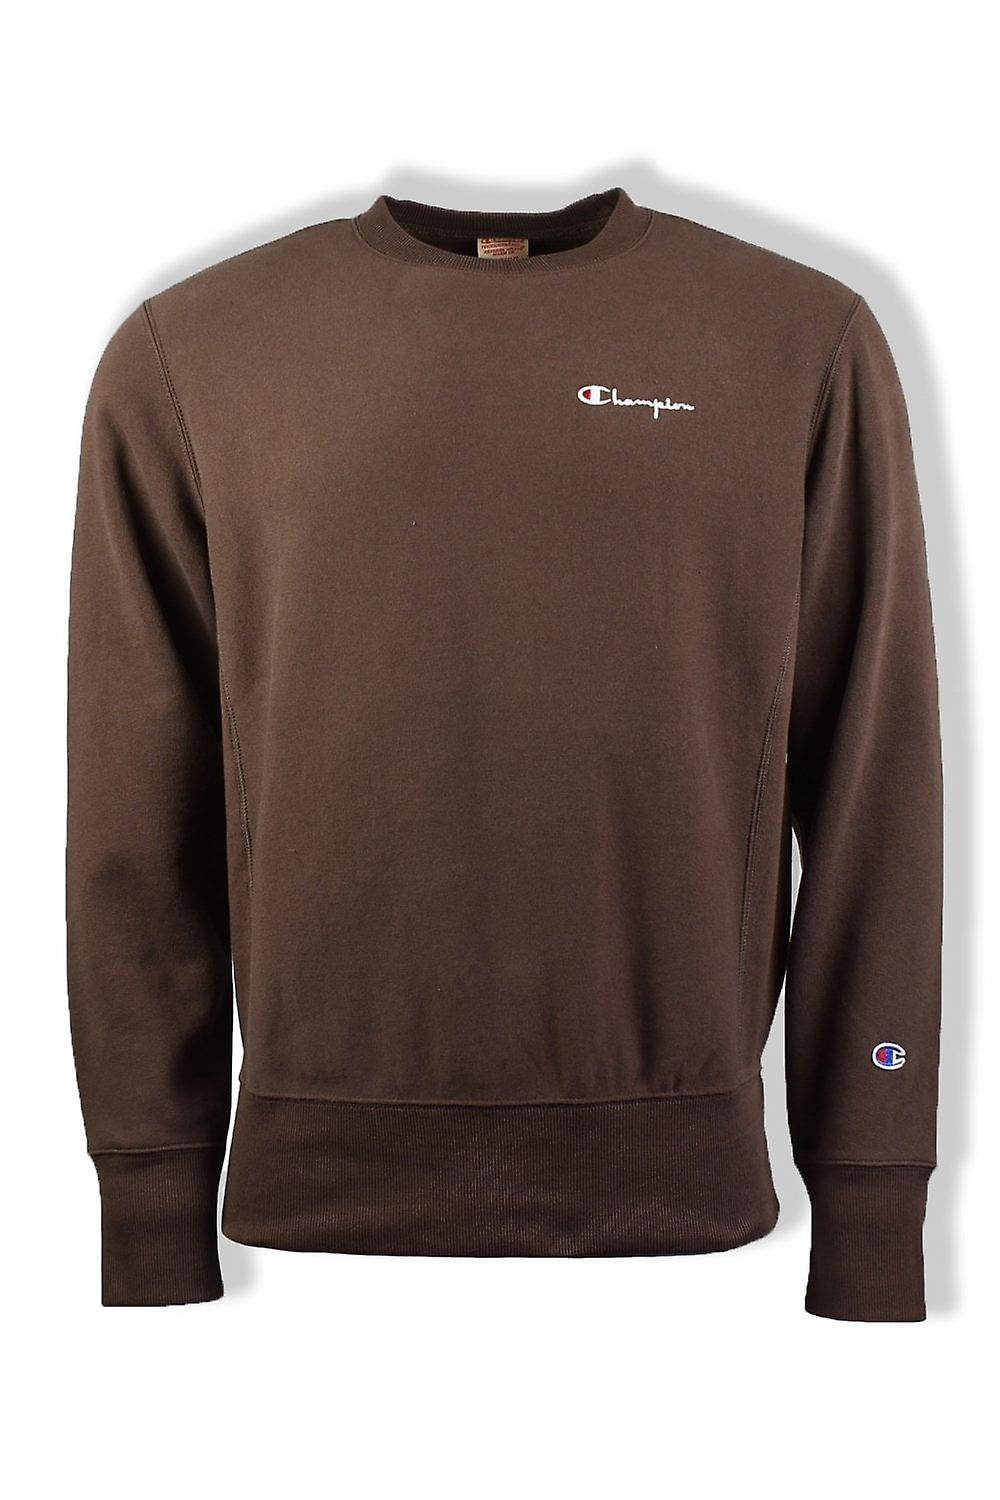 Champion Reverse Weave Sweatshirt (Brown)